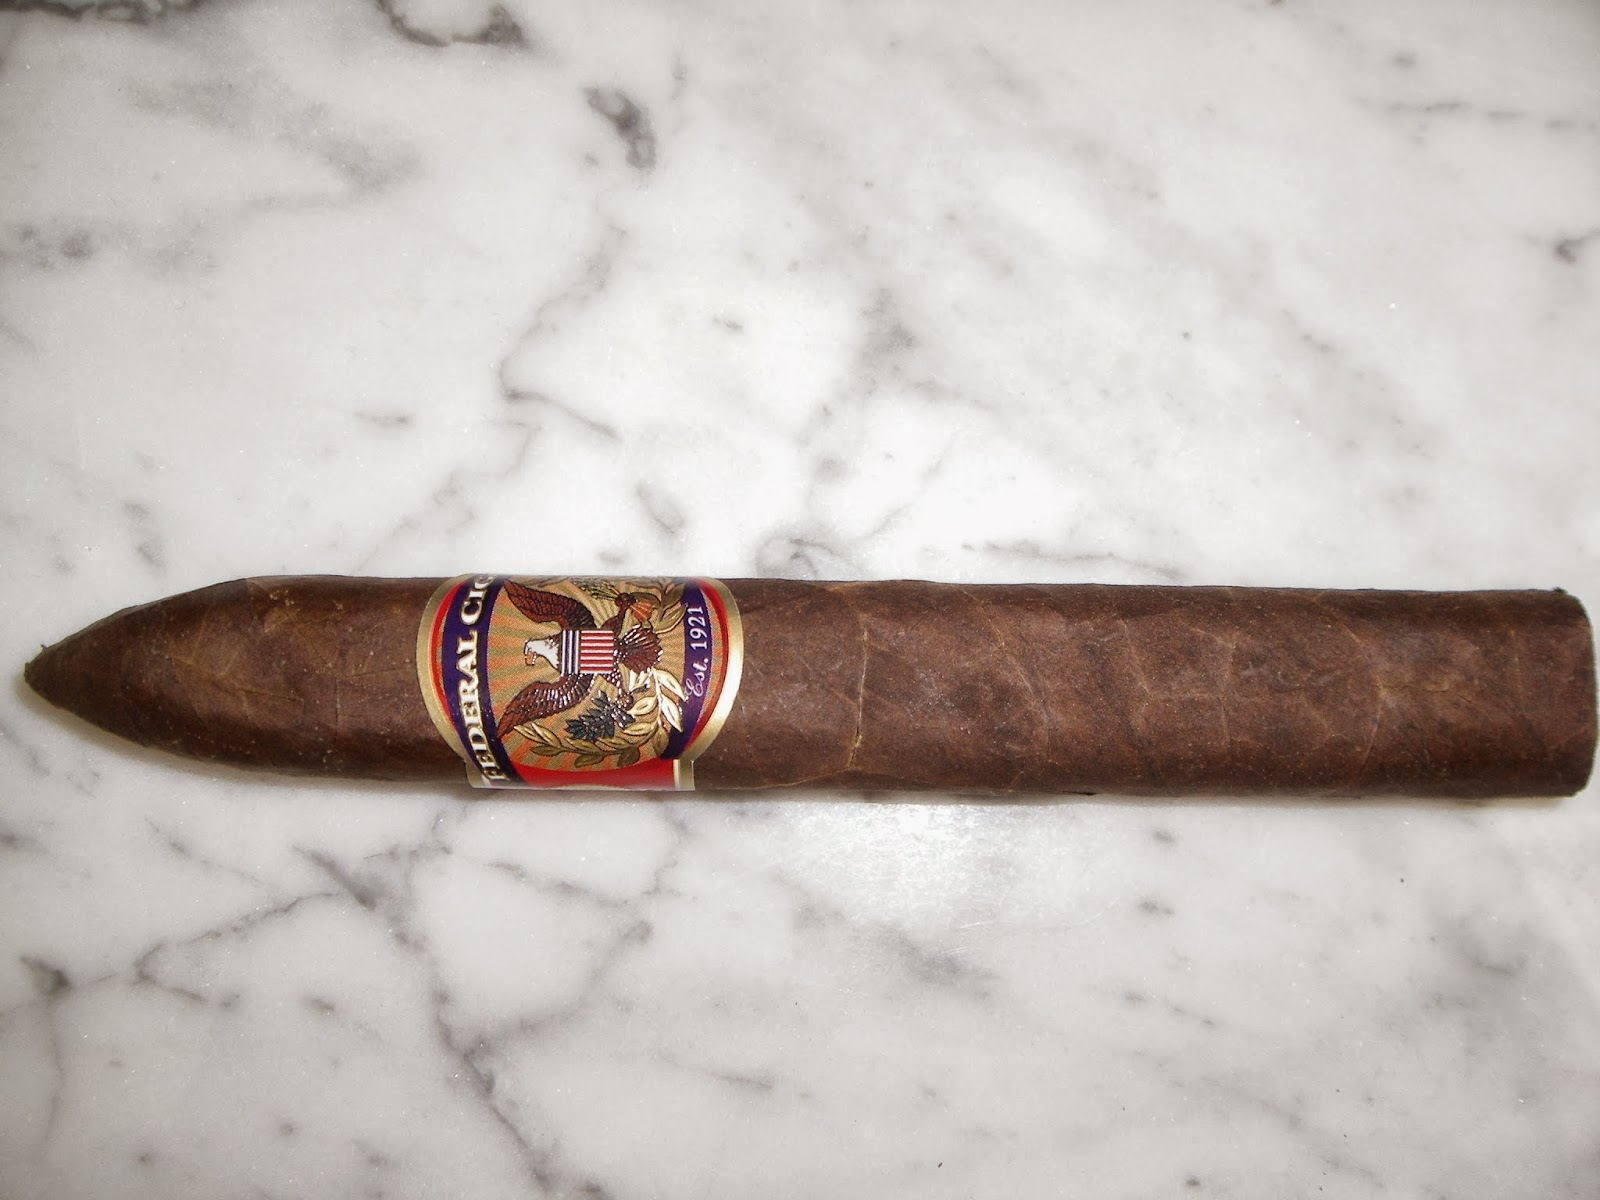 Cigar Review: Federal Cigar 93rd Anniversary Reserve No. 2 by Oliva